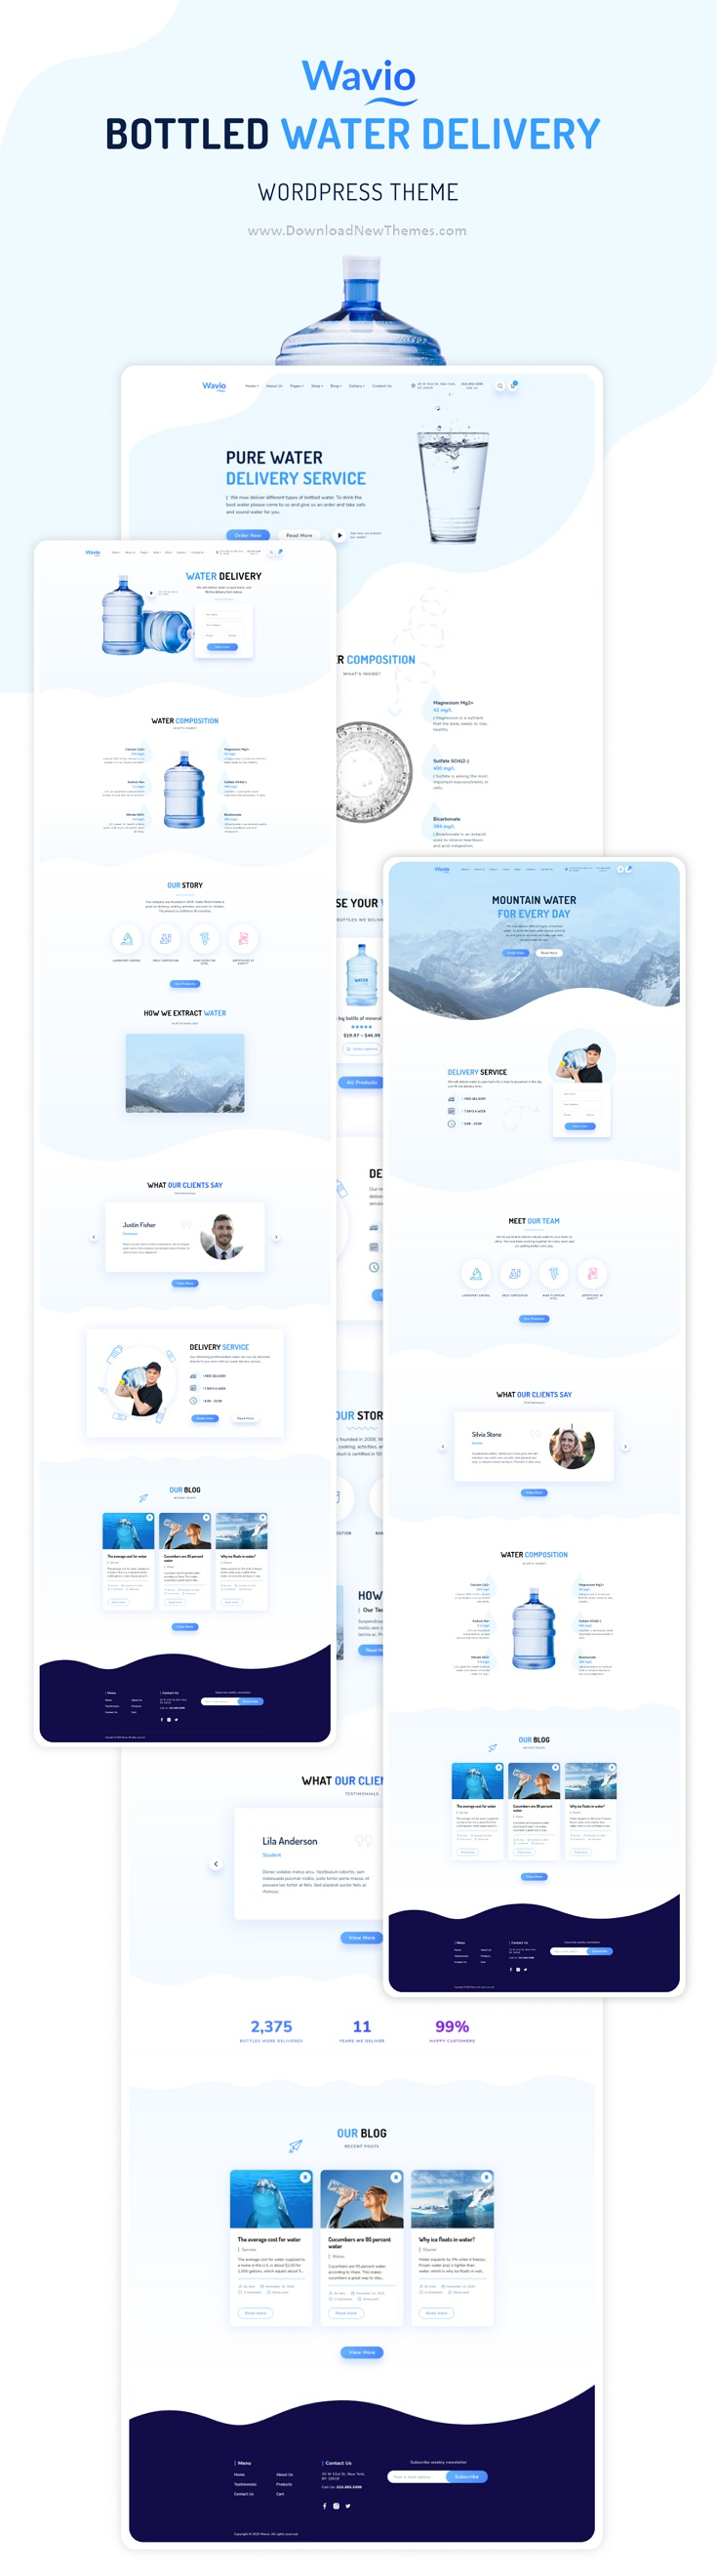 Bottled Water Delivery WordPress Theme